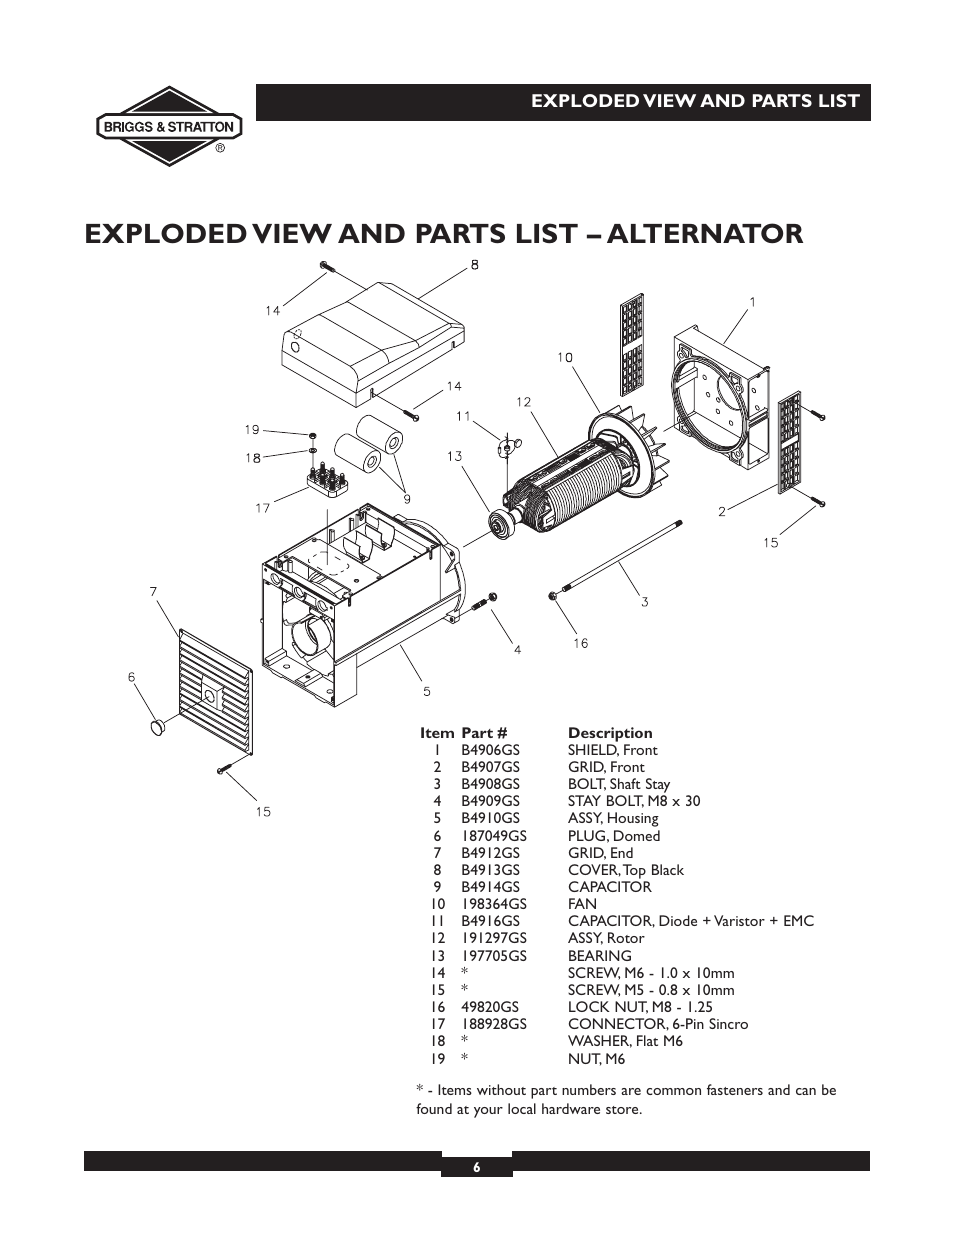 Exploded View And Parts List Alternator Briggs Stratton Elite Engine Diagram For 09801 9 User Manual Page 6